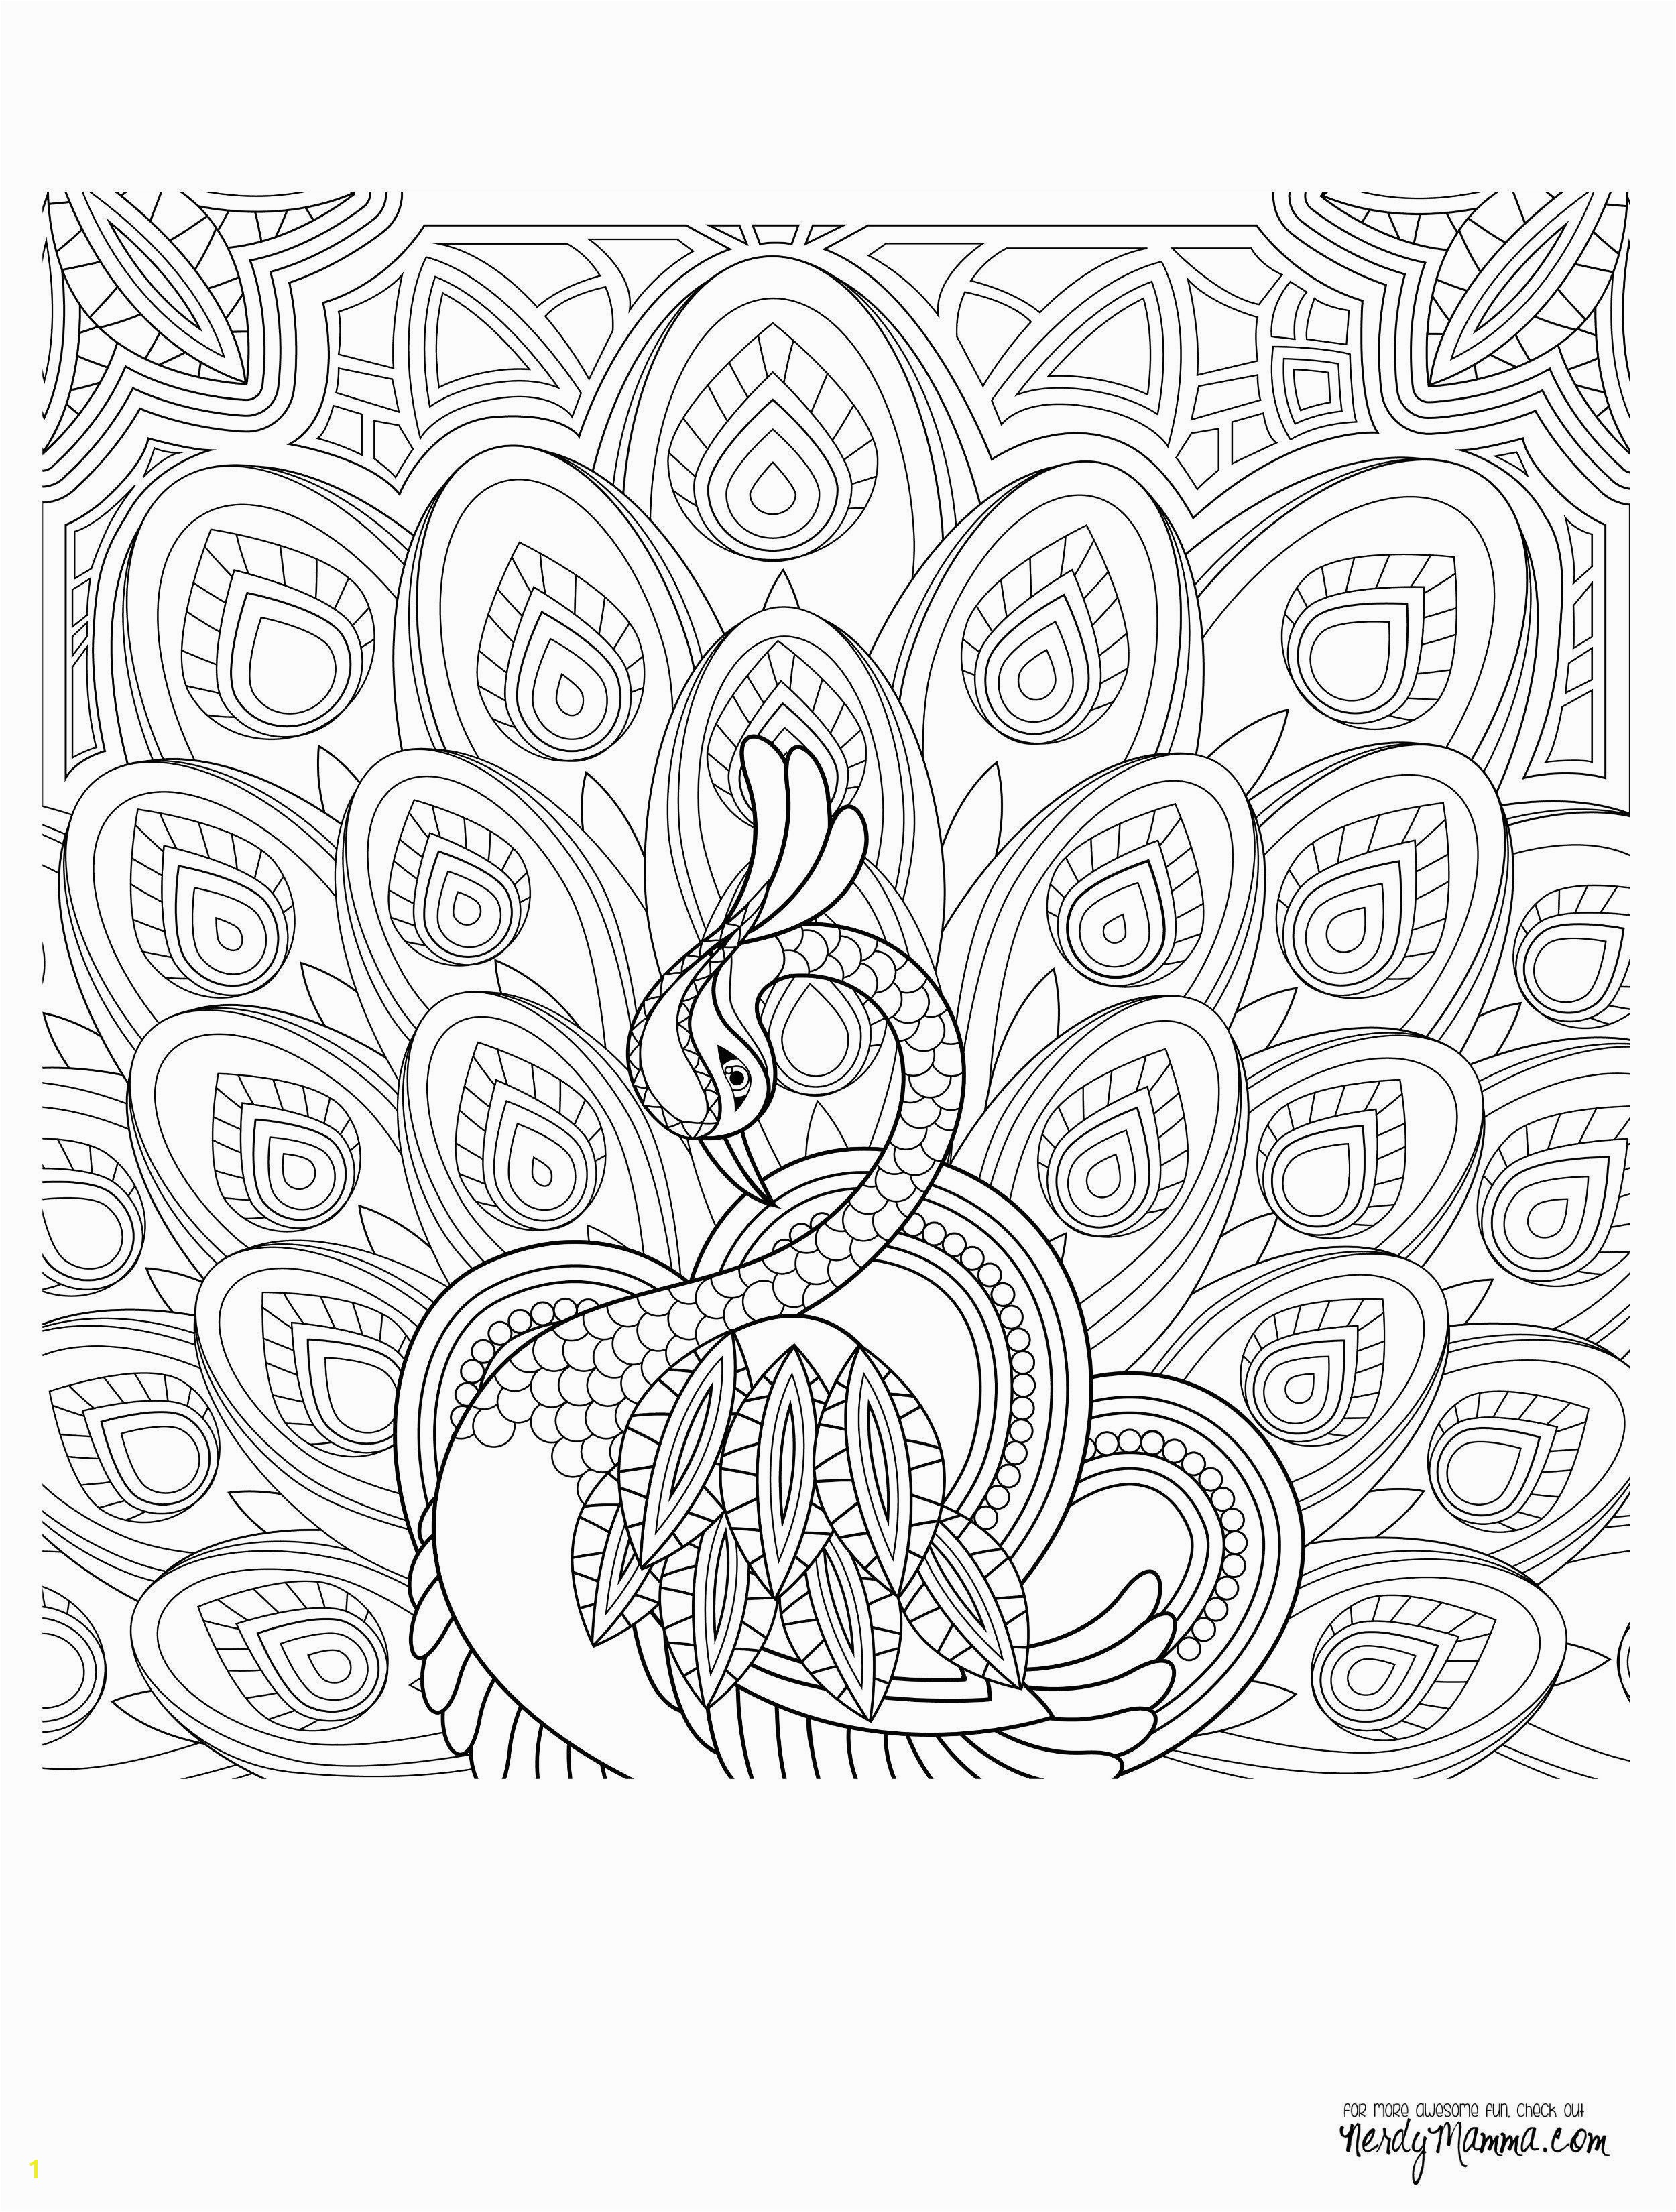 Coloring Pages for Adults Best Fresh S S Media Cache Ak0 Pinimg originals 0d B4 2c